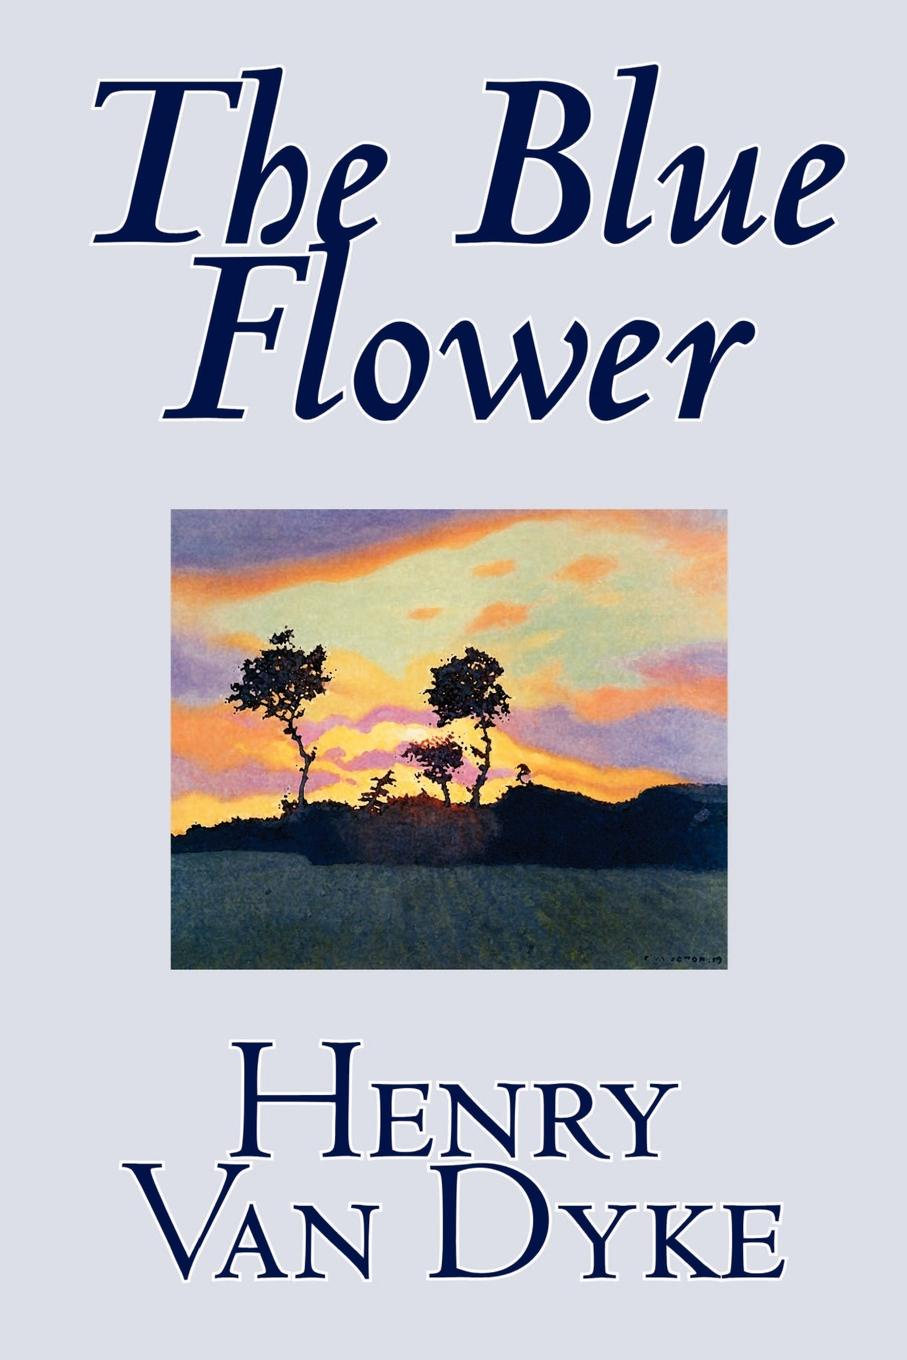 Henry Van Dyke The Blue Flower by Henry Van Dyke, Fiction, Short Stories henry van dyke henry van dyke the story of the other wise man